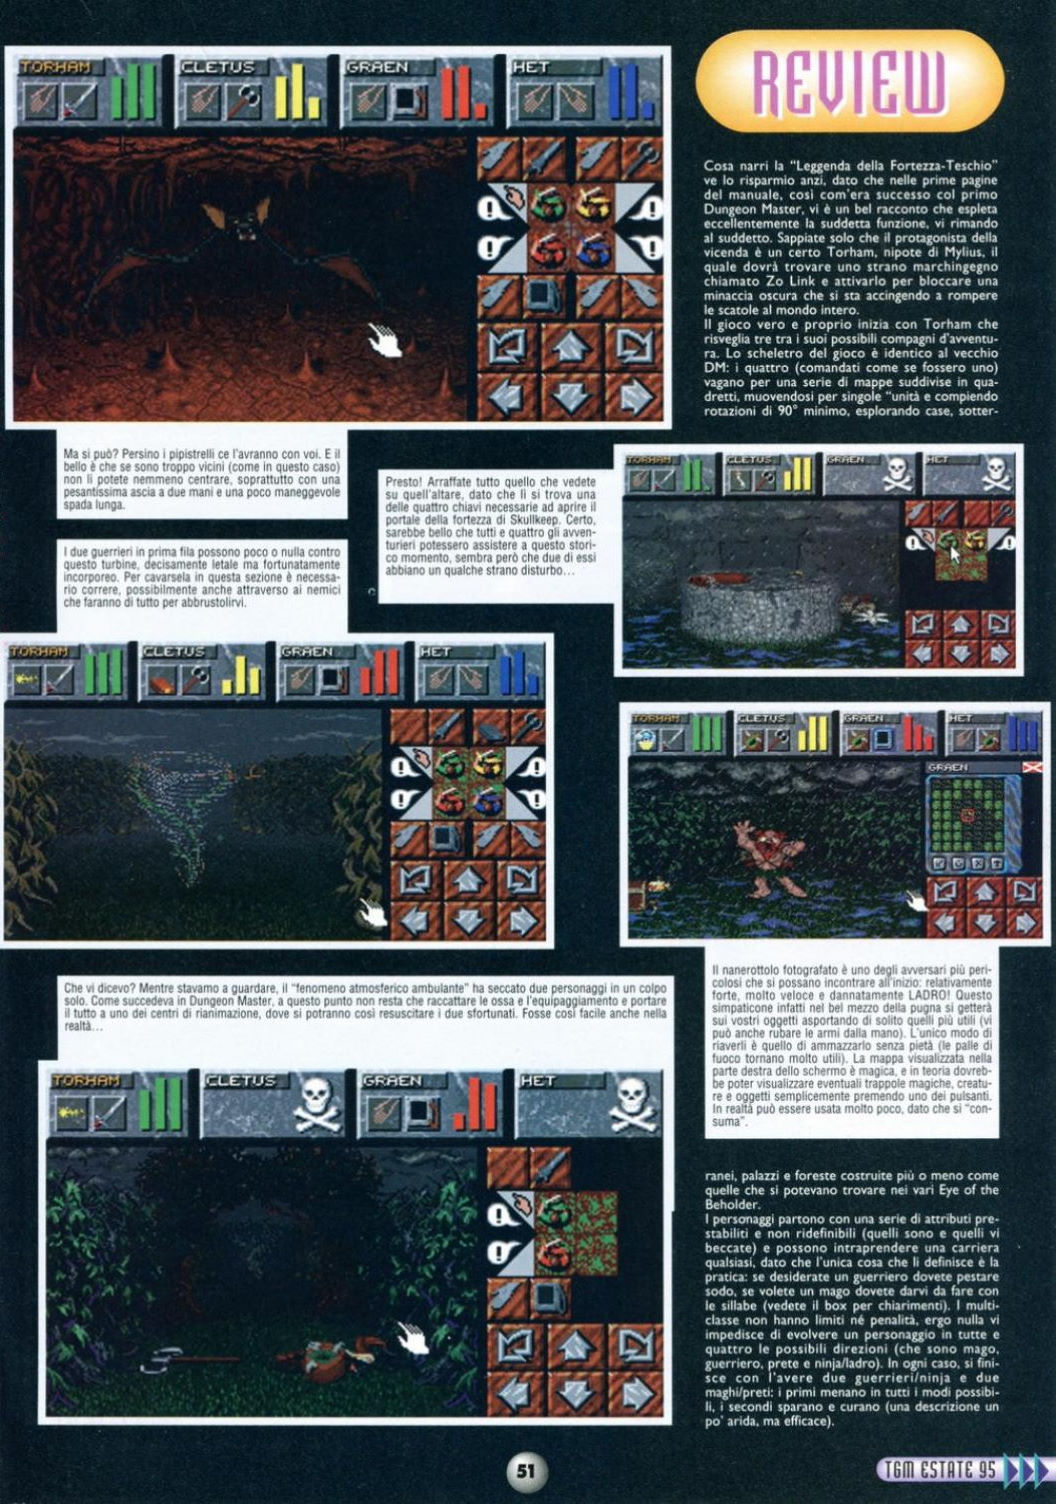 Dungeon Master II for PC Review published in Italian magazine 'The Games Machine', Issue #77 July-August 1995, Page 51